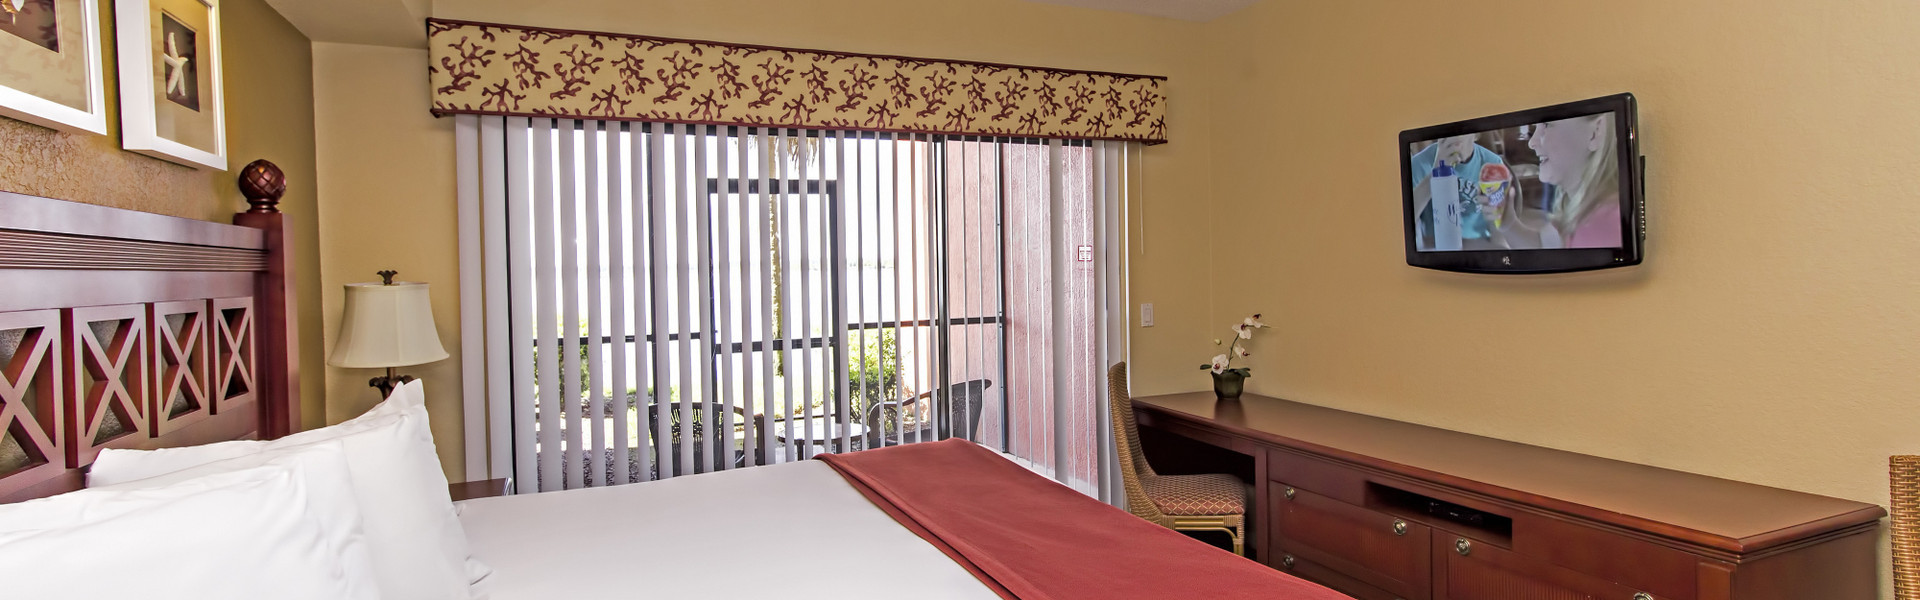 Hotel With 3 Bedroom Villa Suites Near Orlando | Suites Accommodations